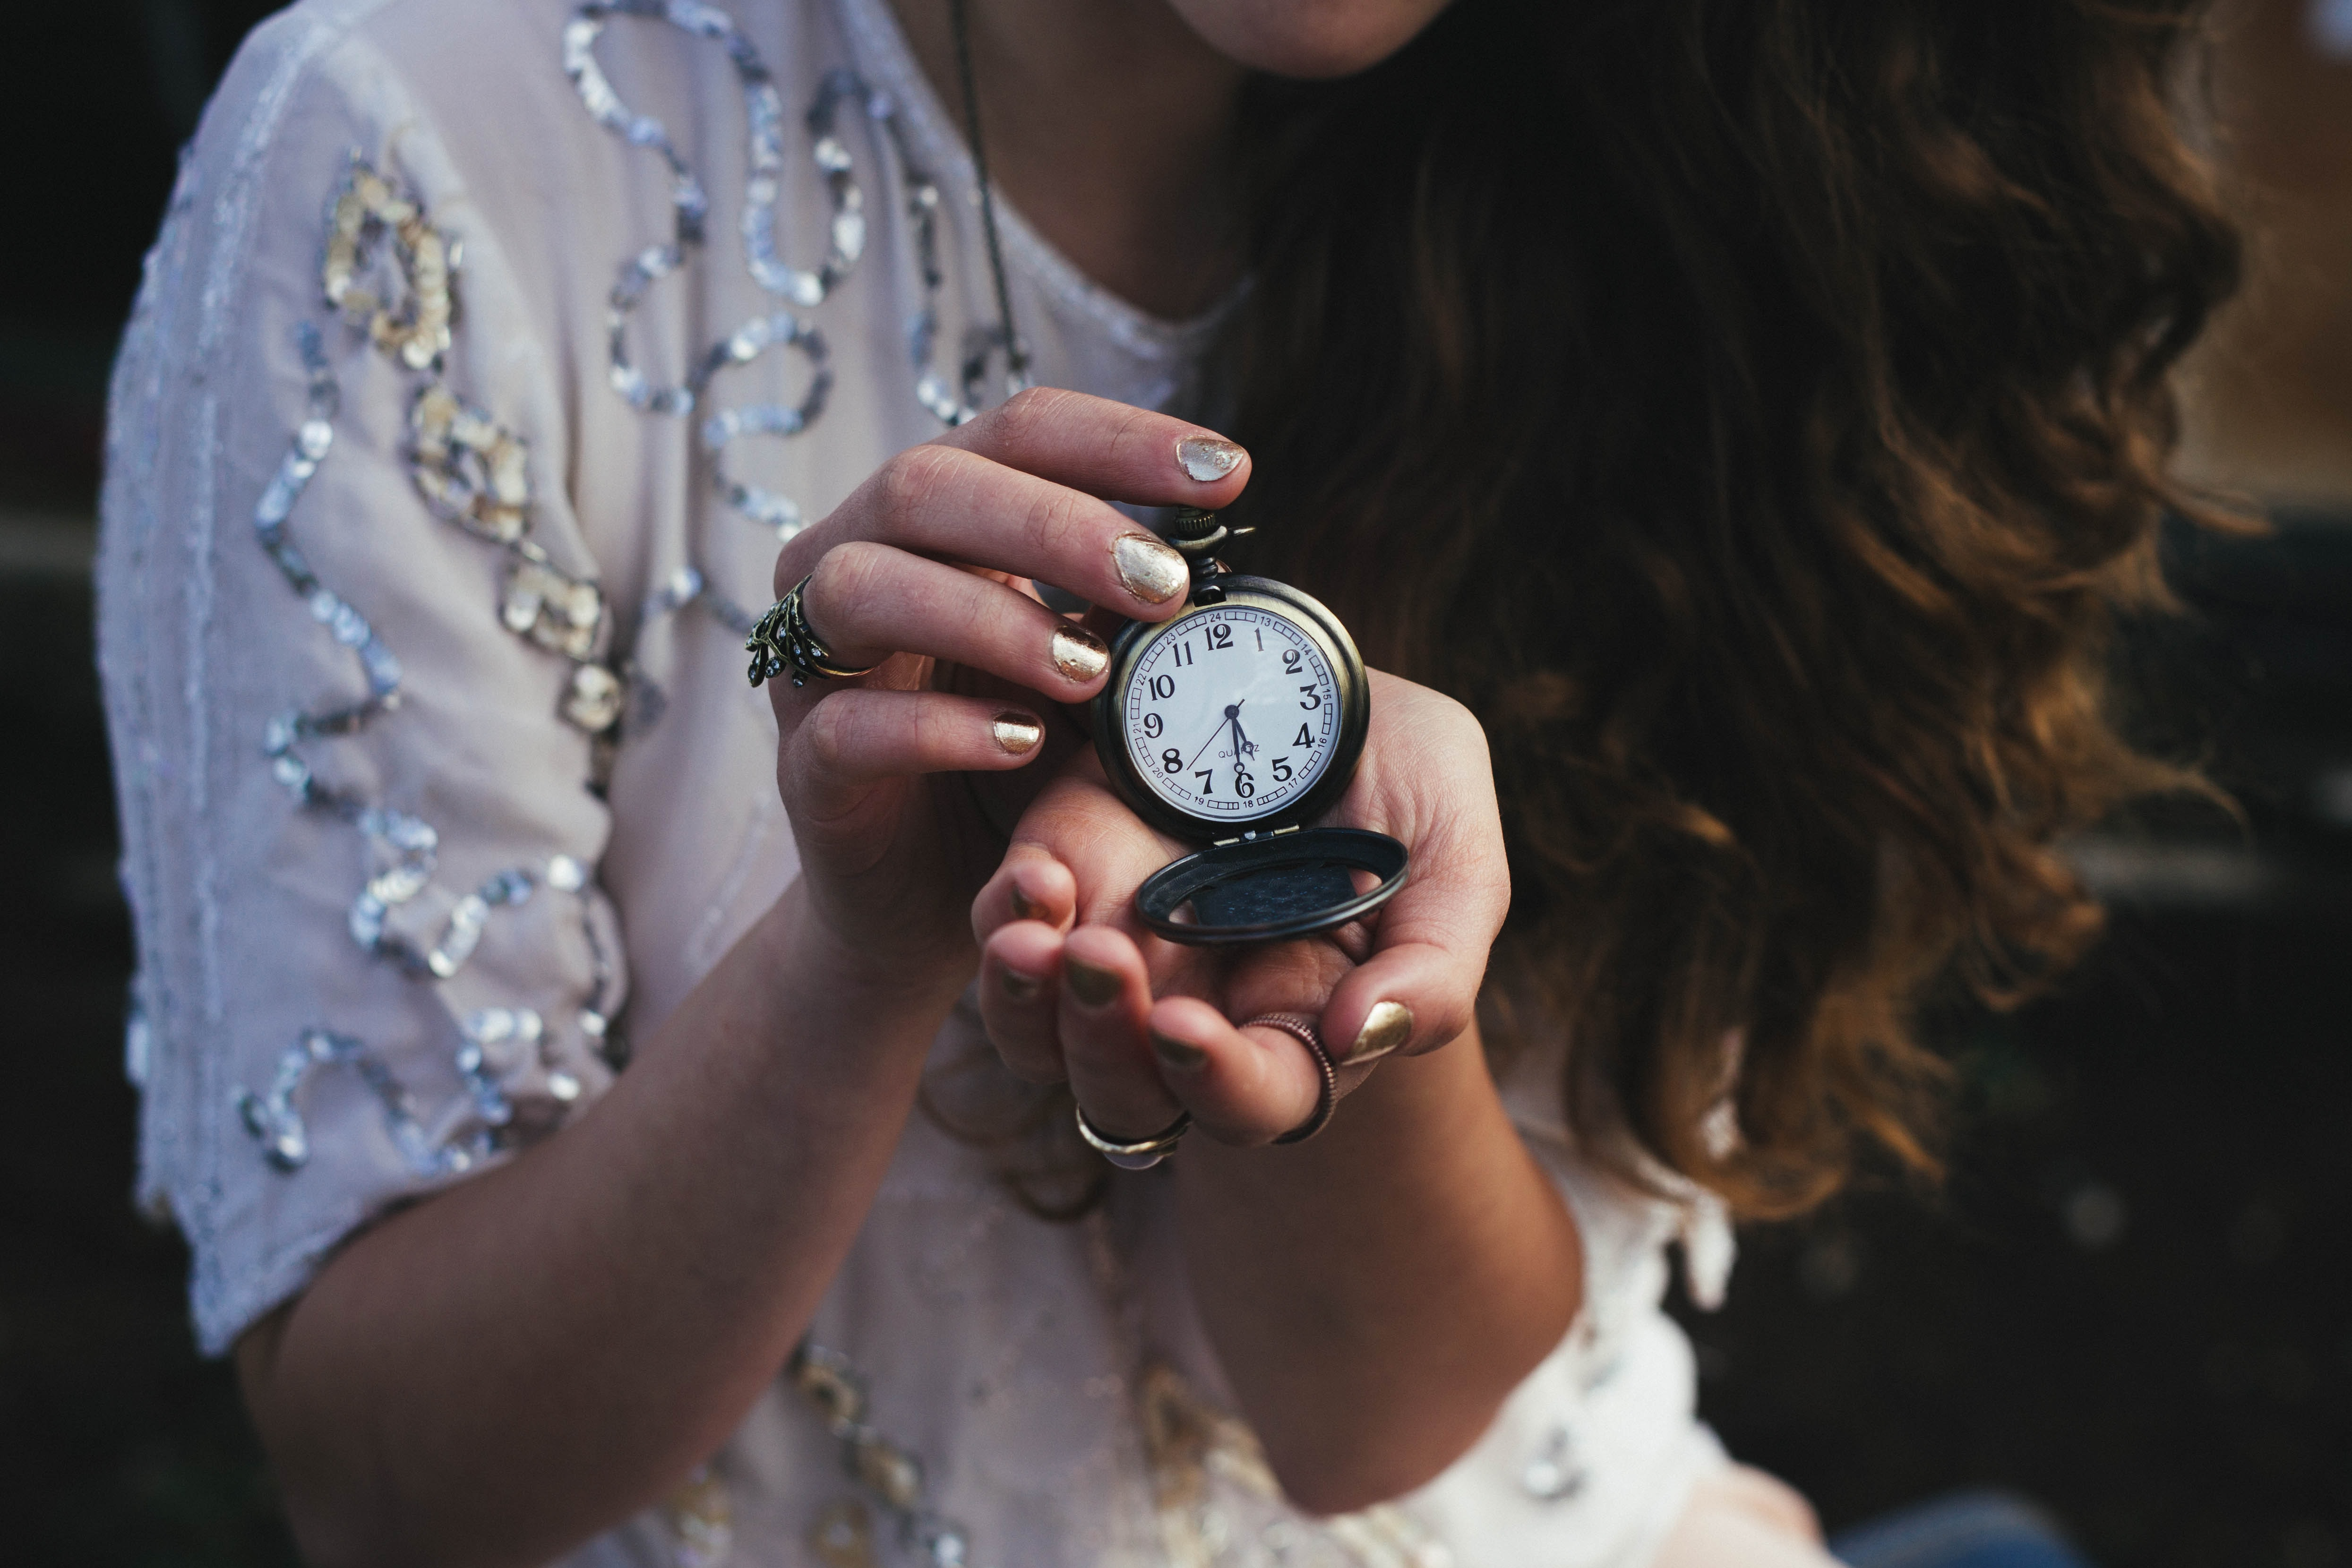 woman holding black pocket watch at 5:30